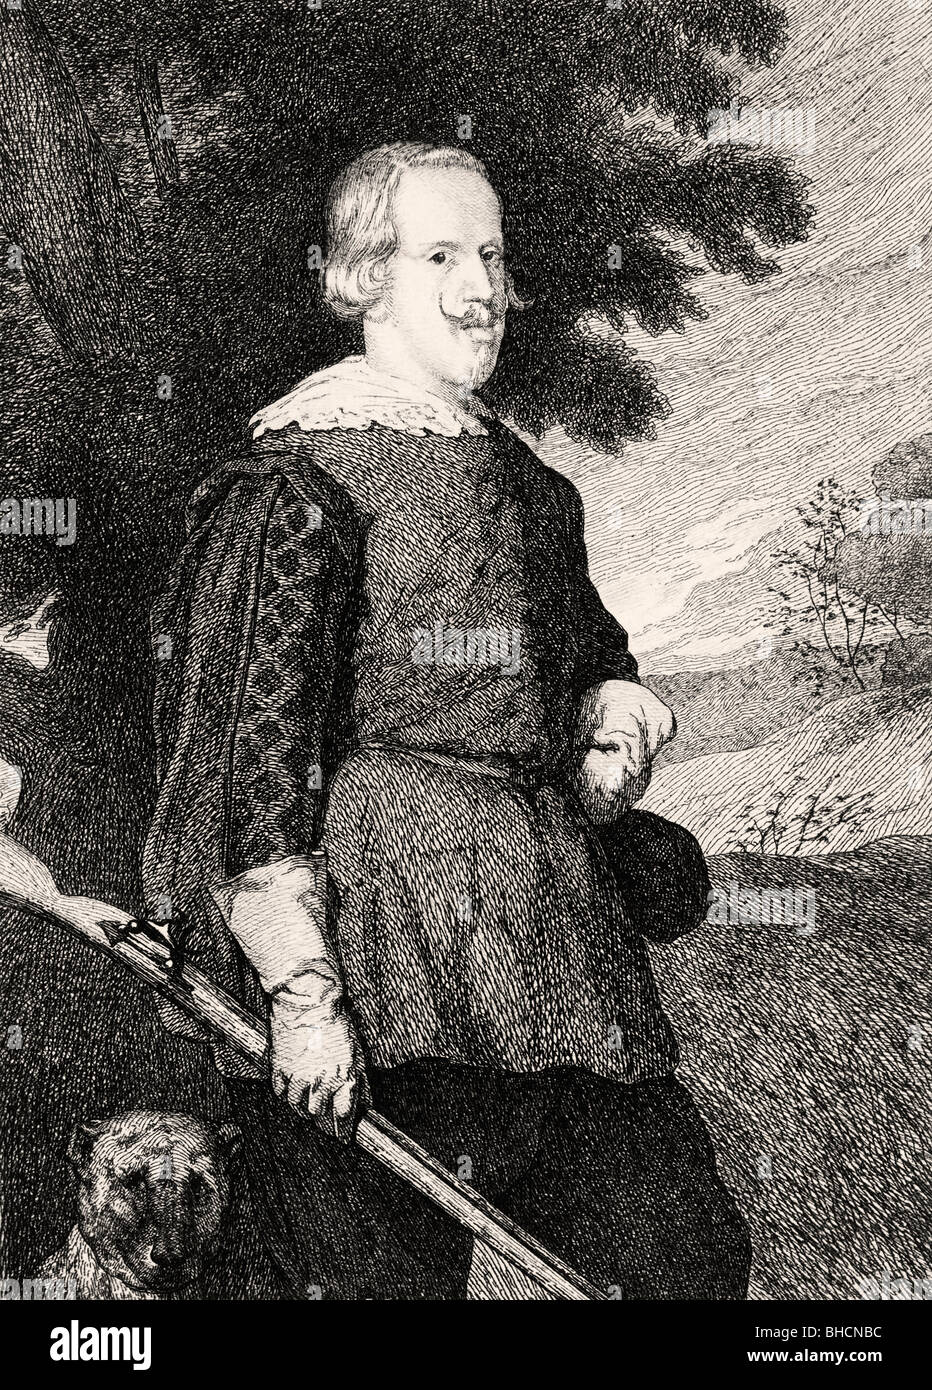 Felipe IV King of Spain in hunting costume. 19th century engraving after Diego Velázquez. - Stock Image